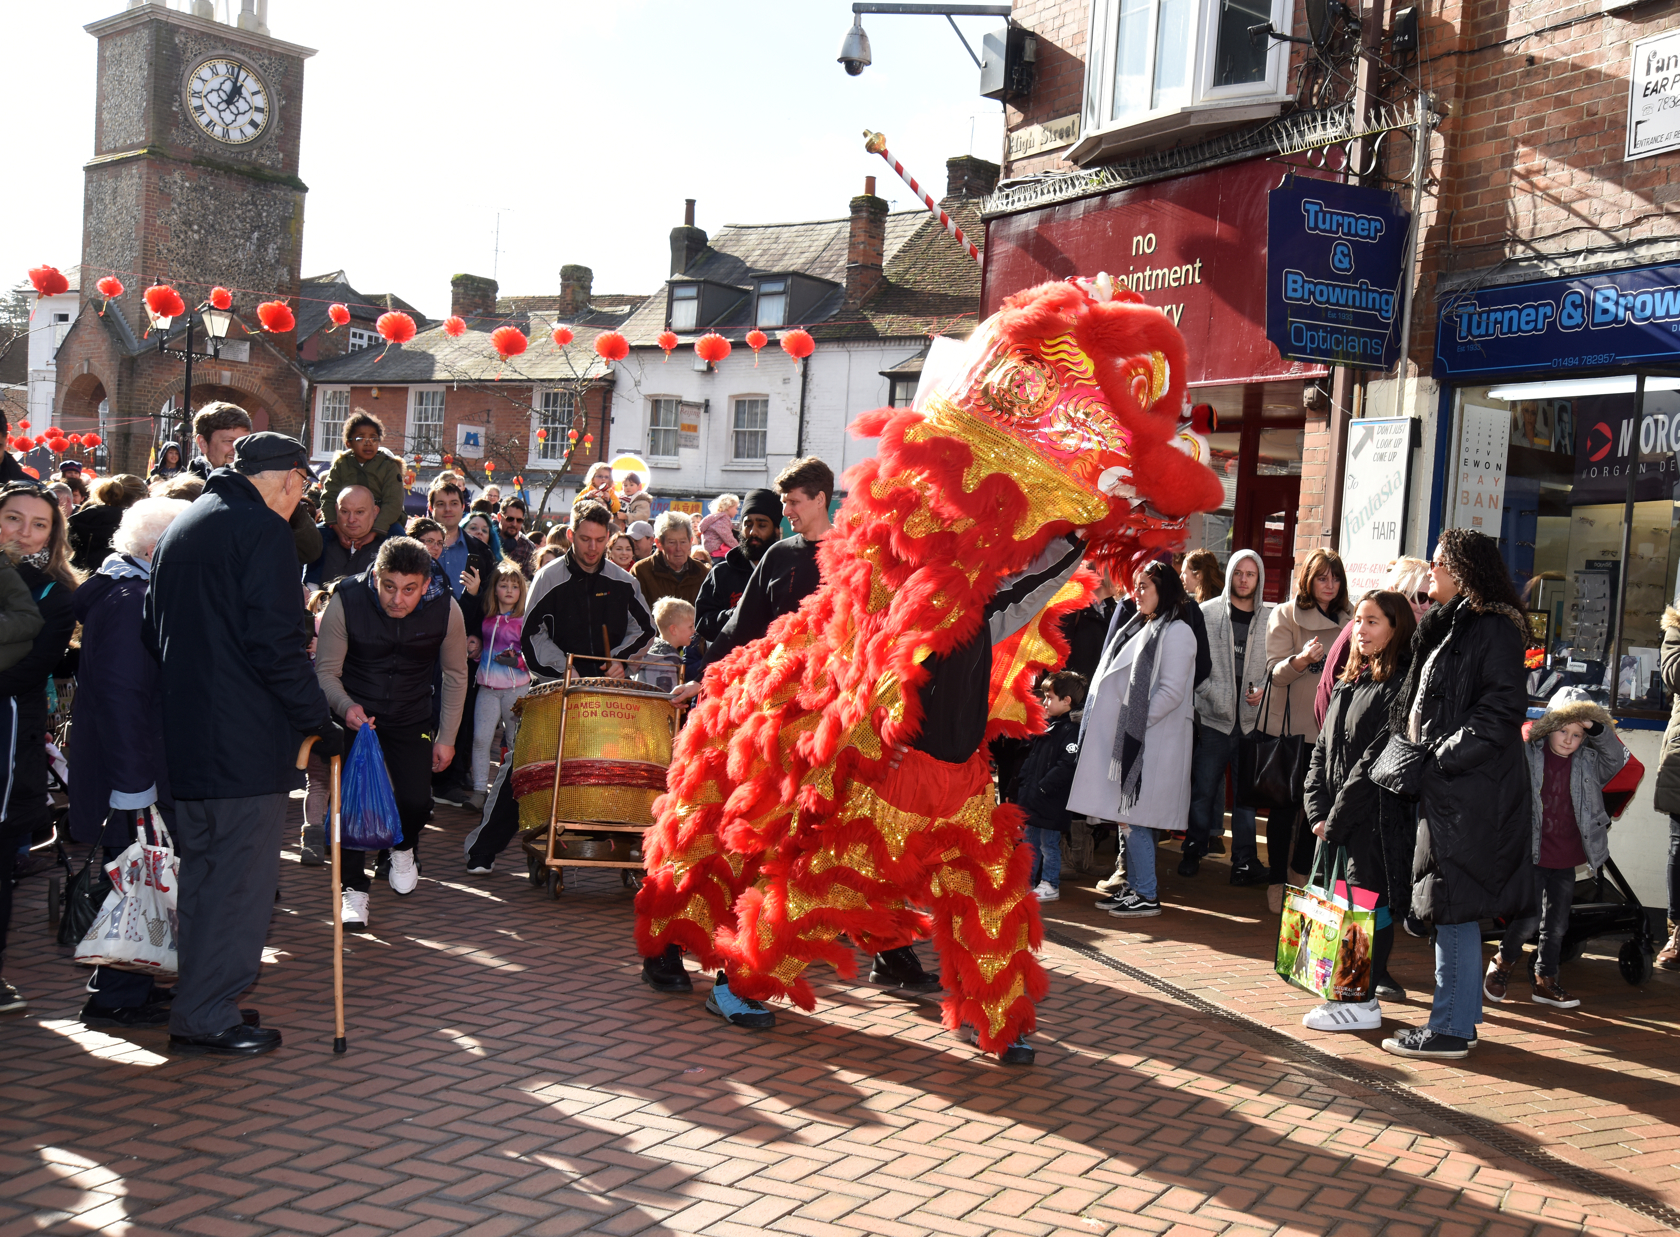 Chinatown comes to Chesham - 17.2.2018  by Ann Priest